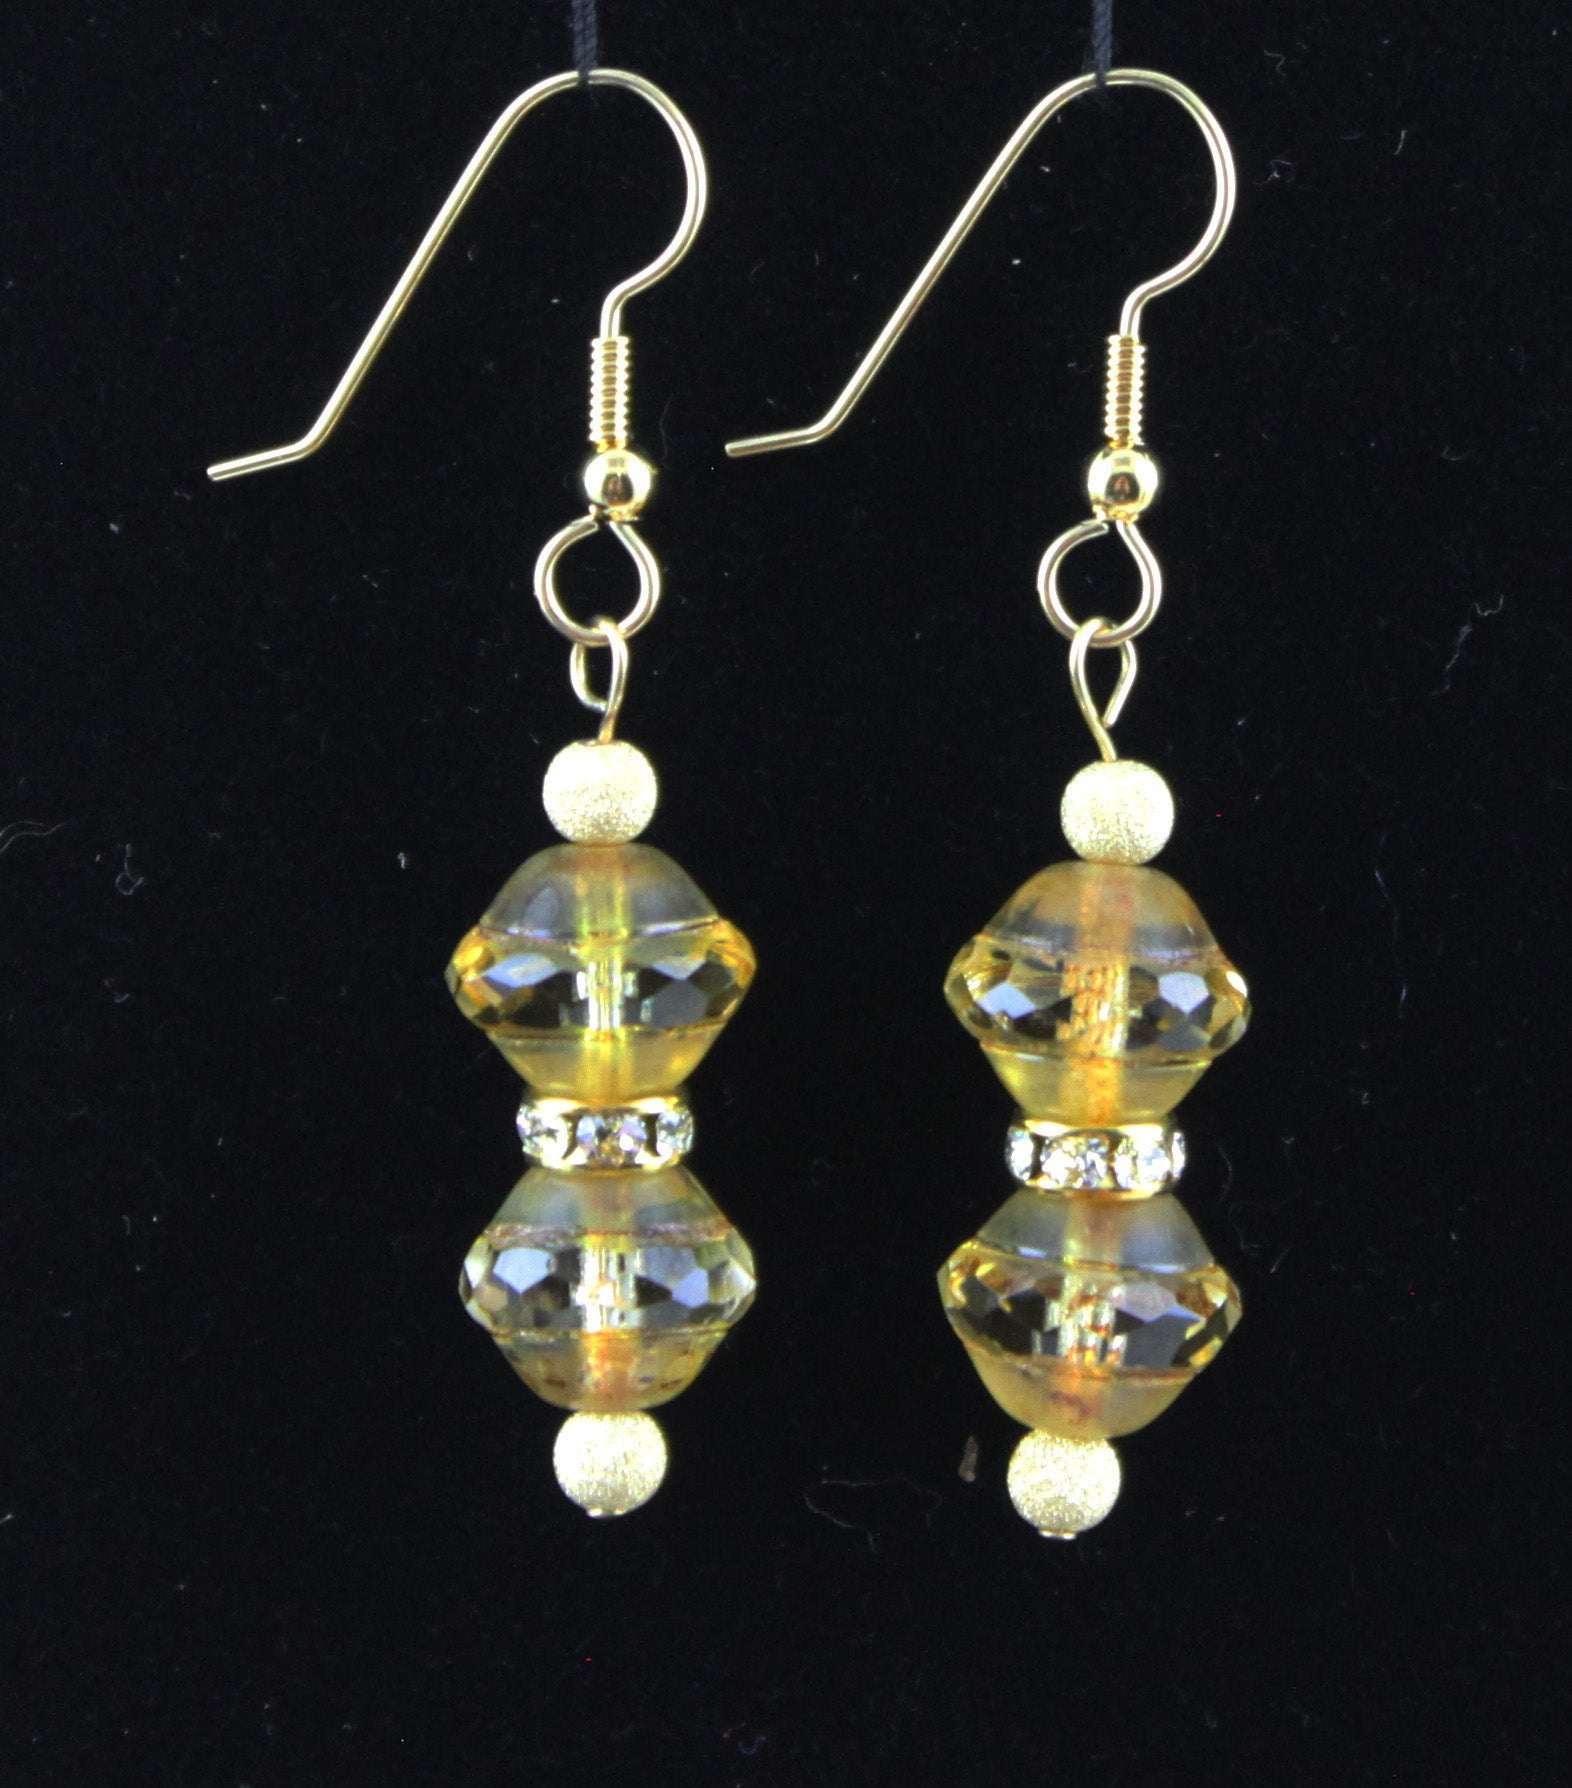 14K Gold-Filled with Swarovski Crystal Earrings